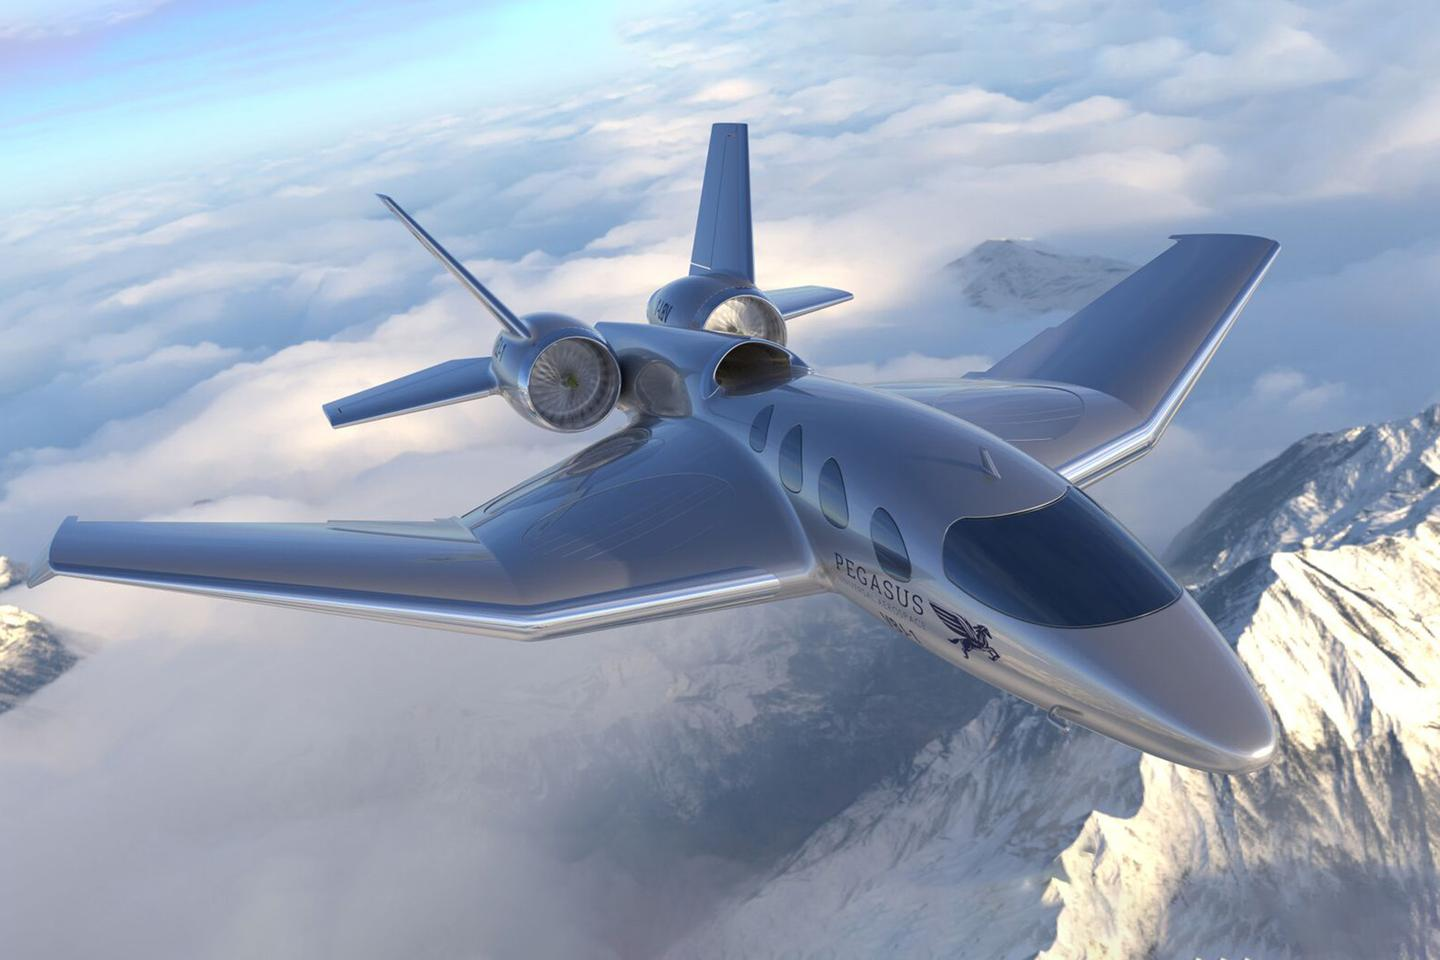 South Africa's Pegasus is planning to use electric VTOL in conjunction with turboshaft cruise engines in order to provide VTOL convenience with turboshaft range and speed